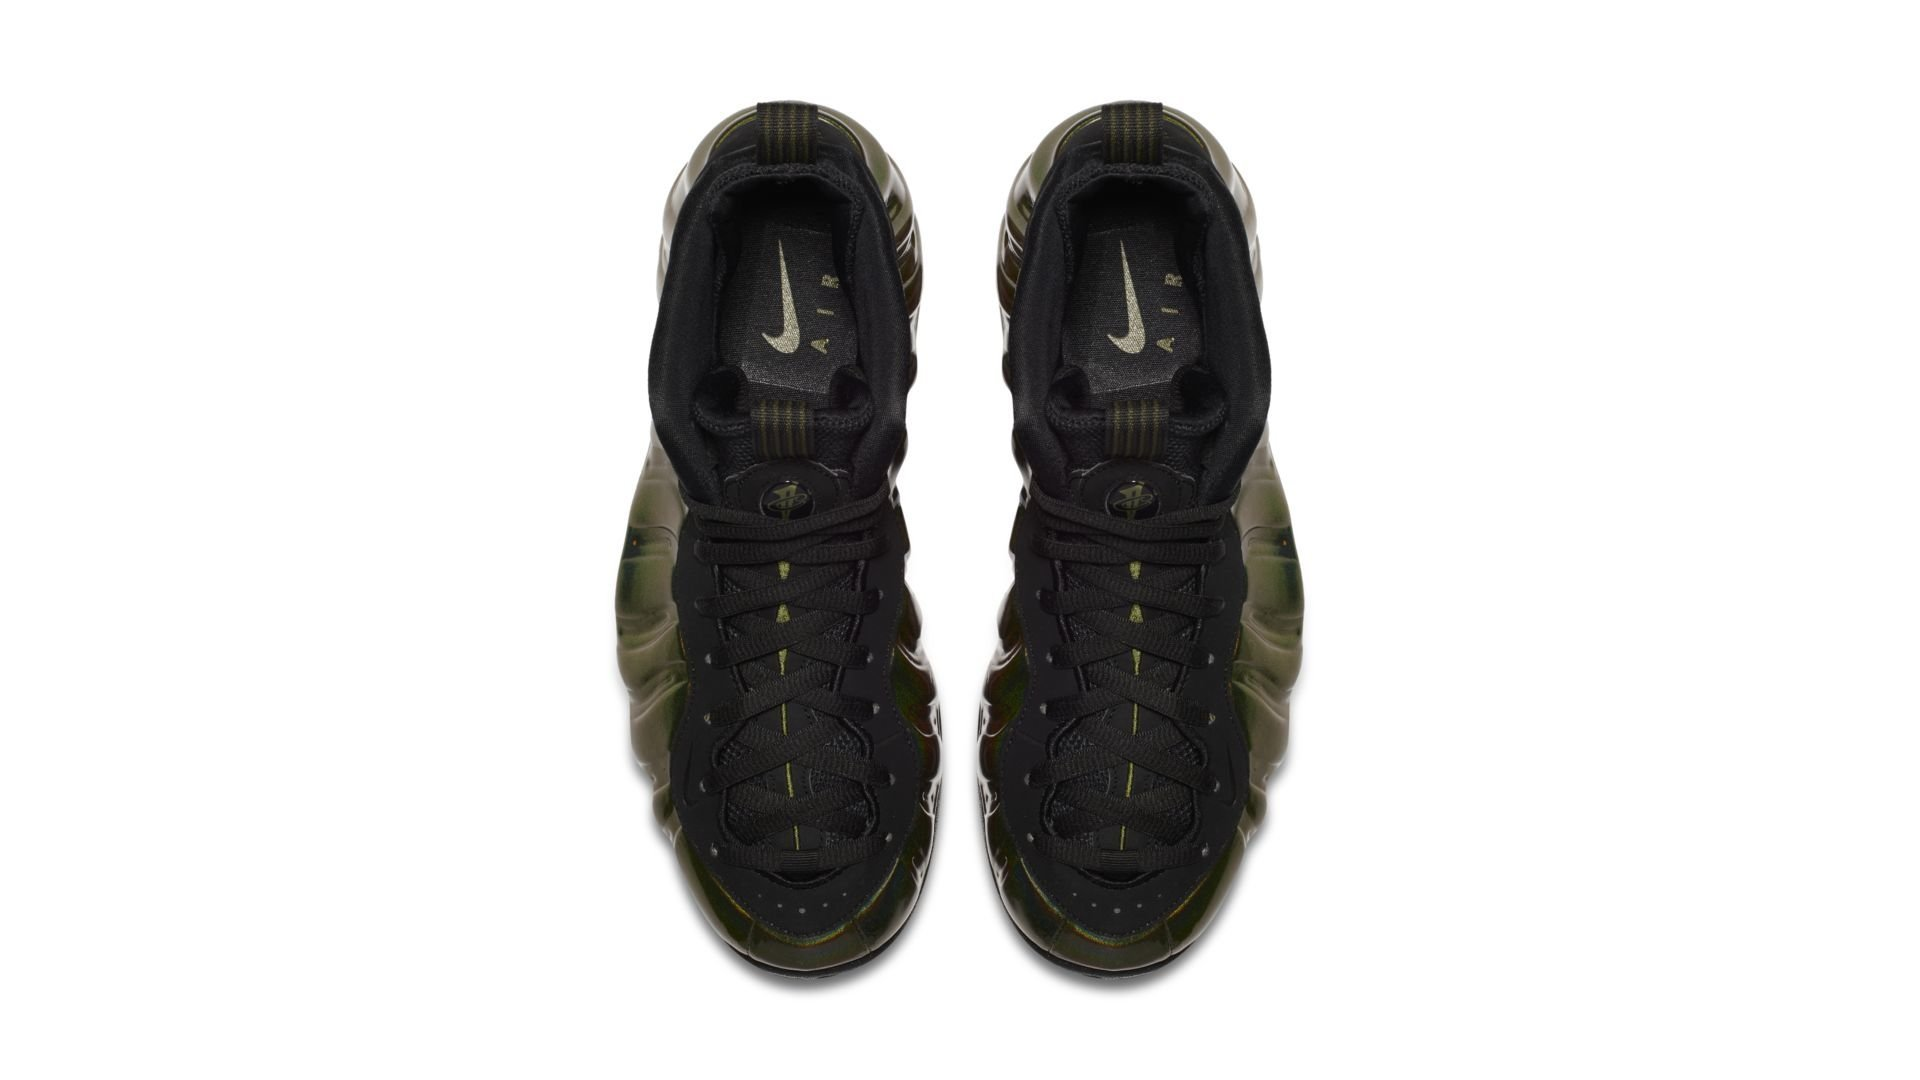 Nike Air Foamposite One 'Legion Green' (314996-301)